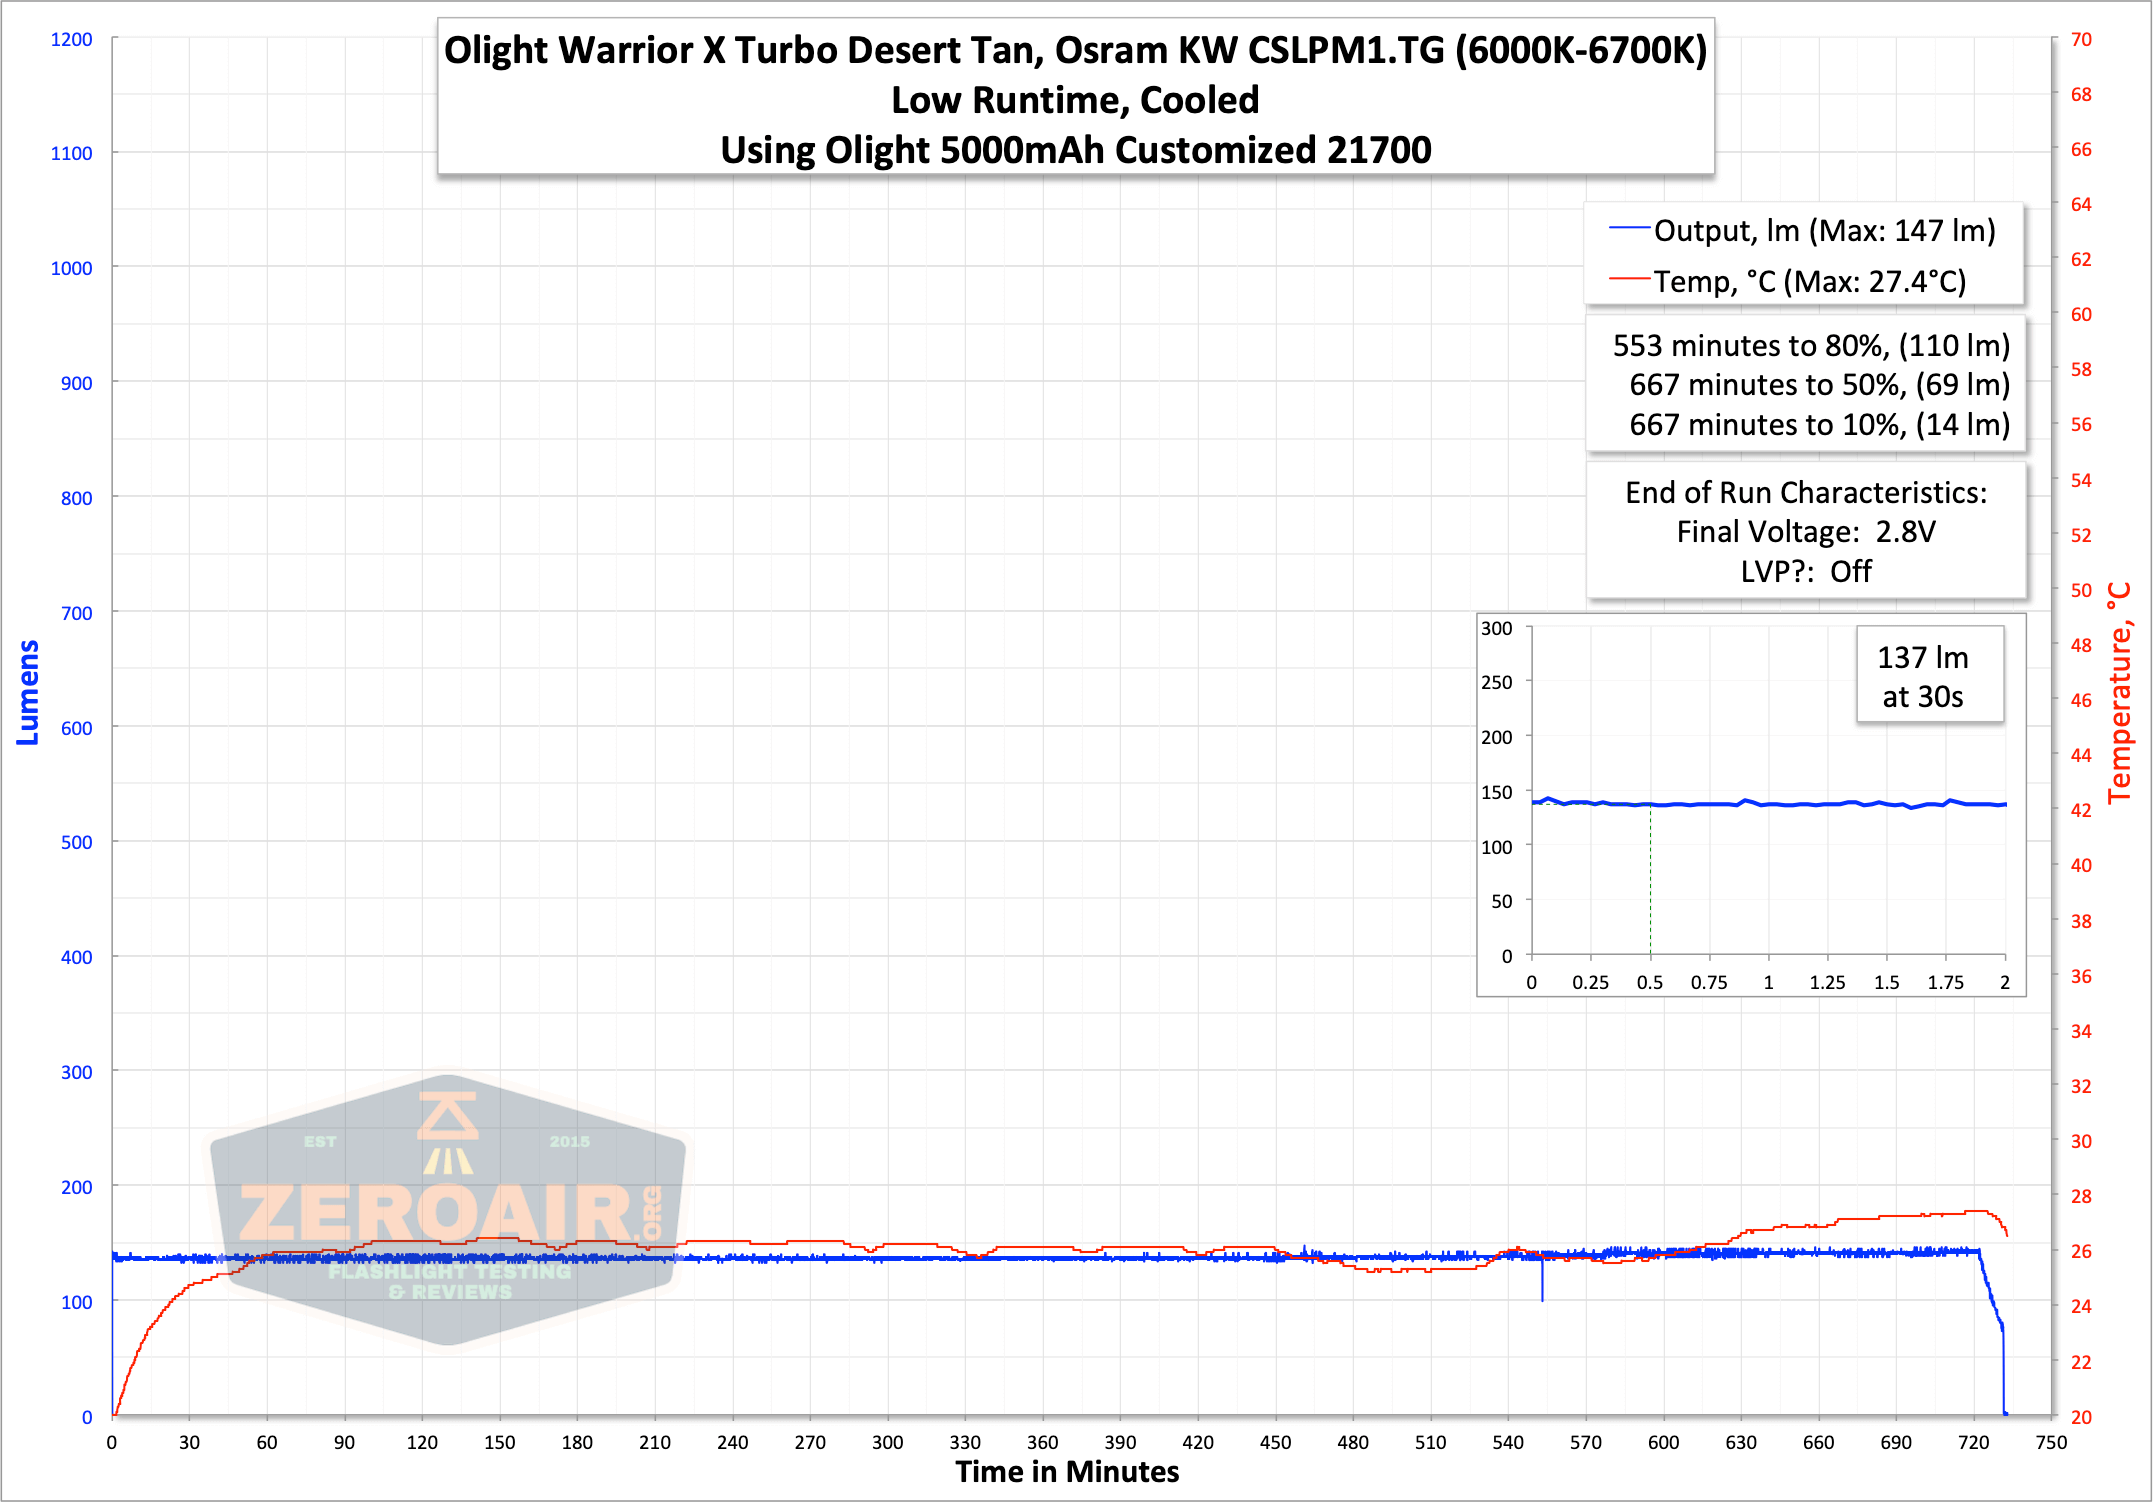 olight warrior x turbo desert tan flashlight runtime low graph